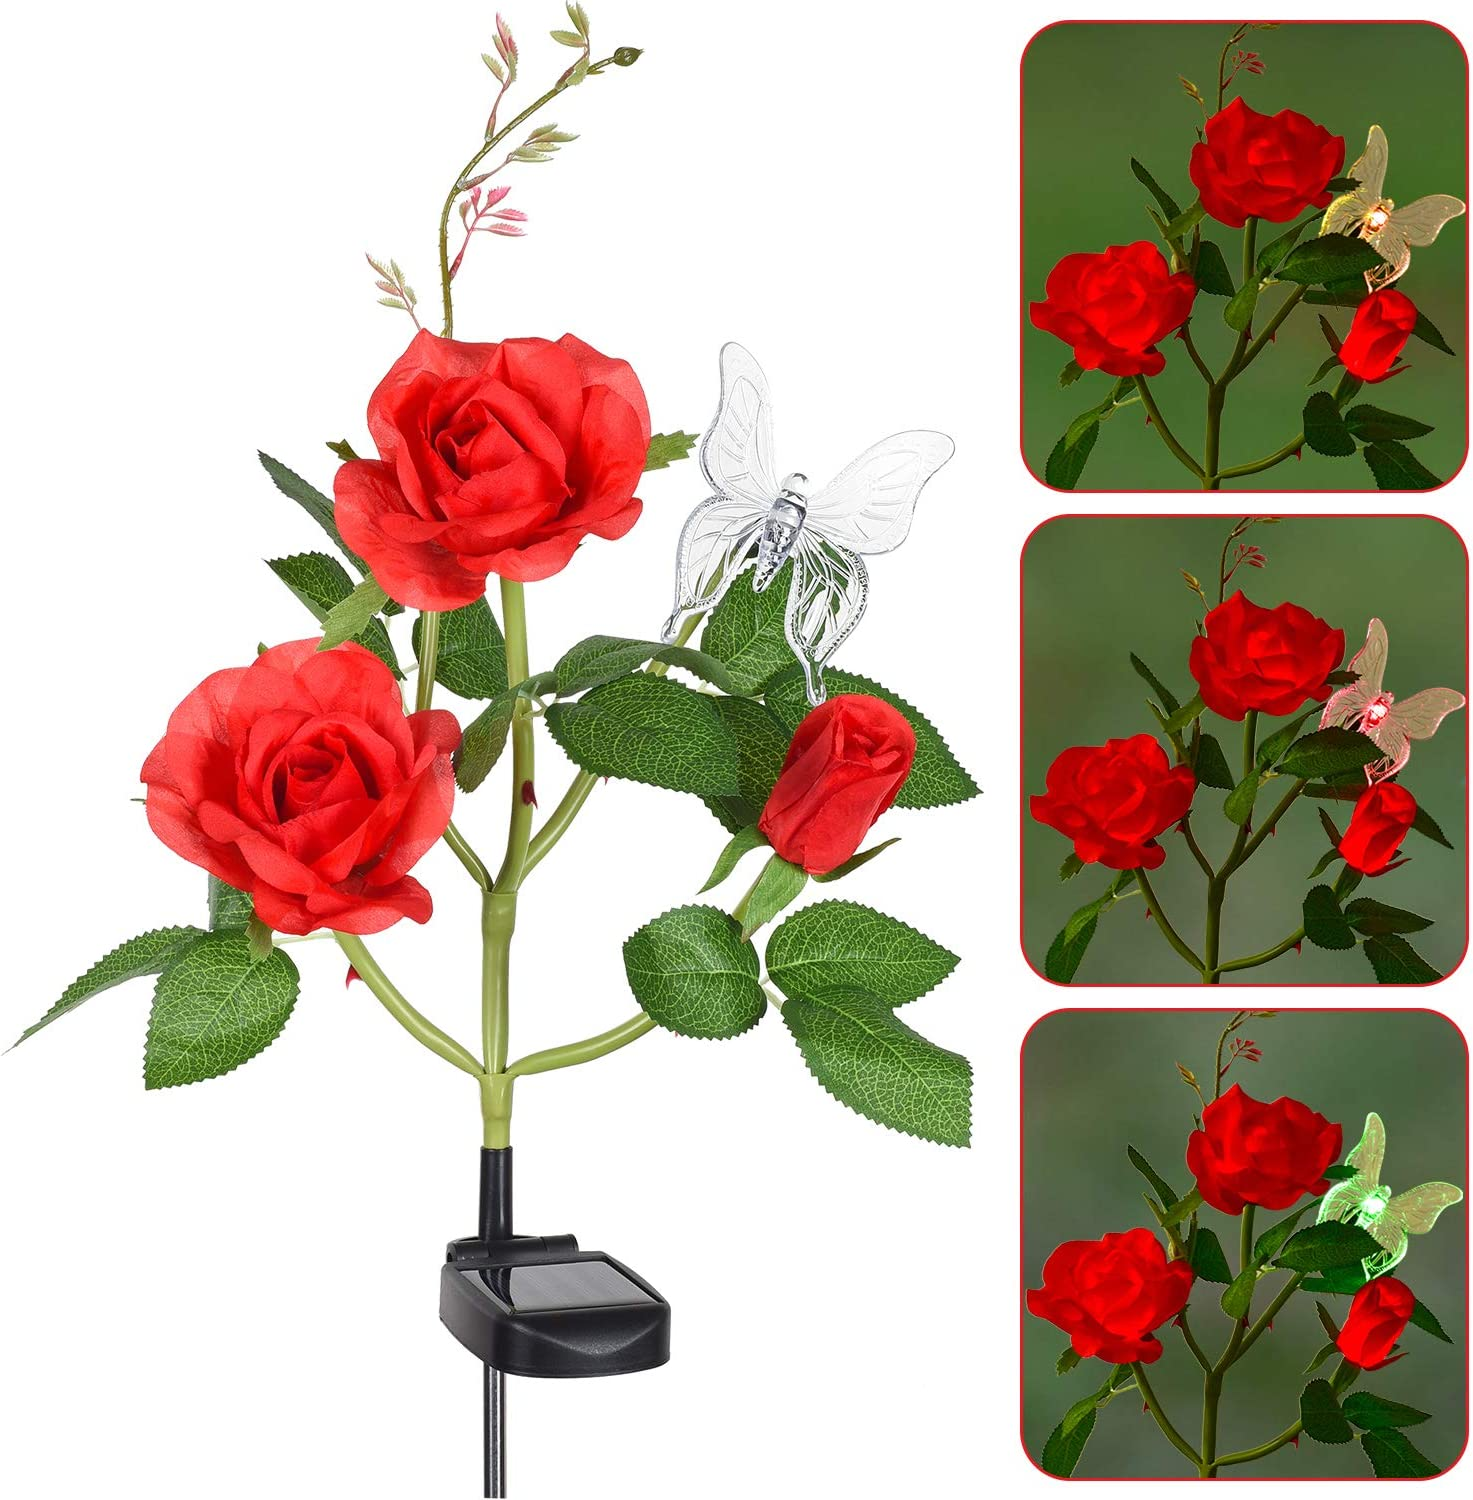 Doingart Outdoor Flower Garden Lights - Solar Powered Artificial Rose Flower Stake with Butterfly Color Changing Lights for Garden Patio Flowerbed Decoration (Red)